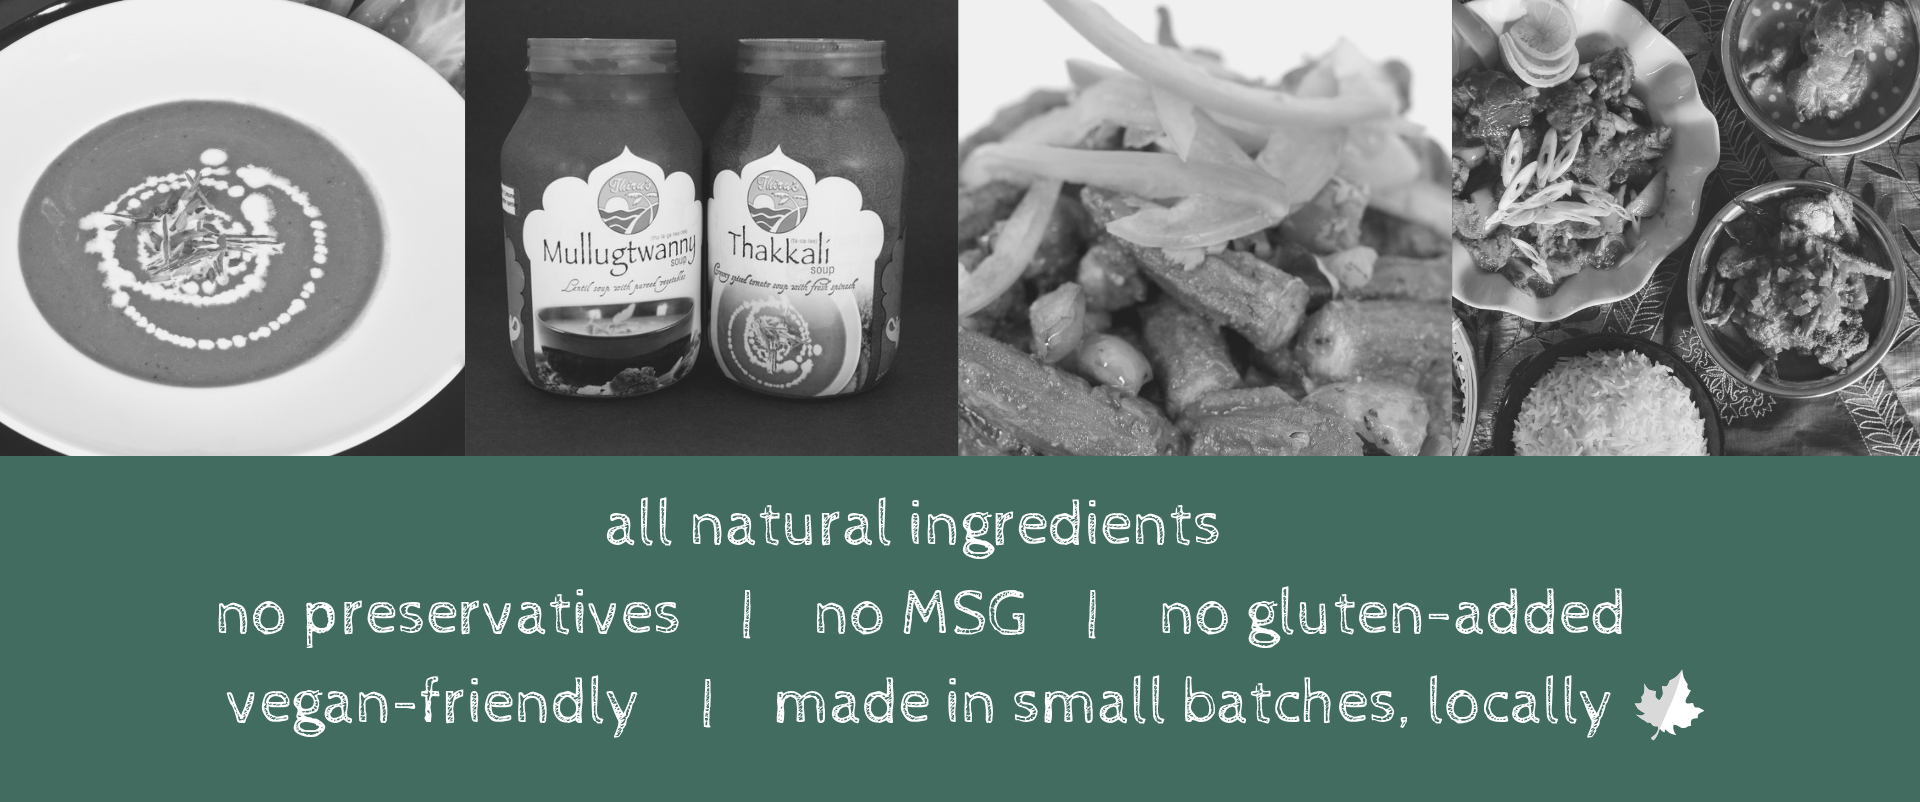 Cooking sauce - all natural ingredients, no preservatives.